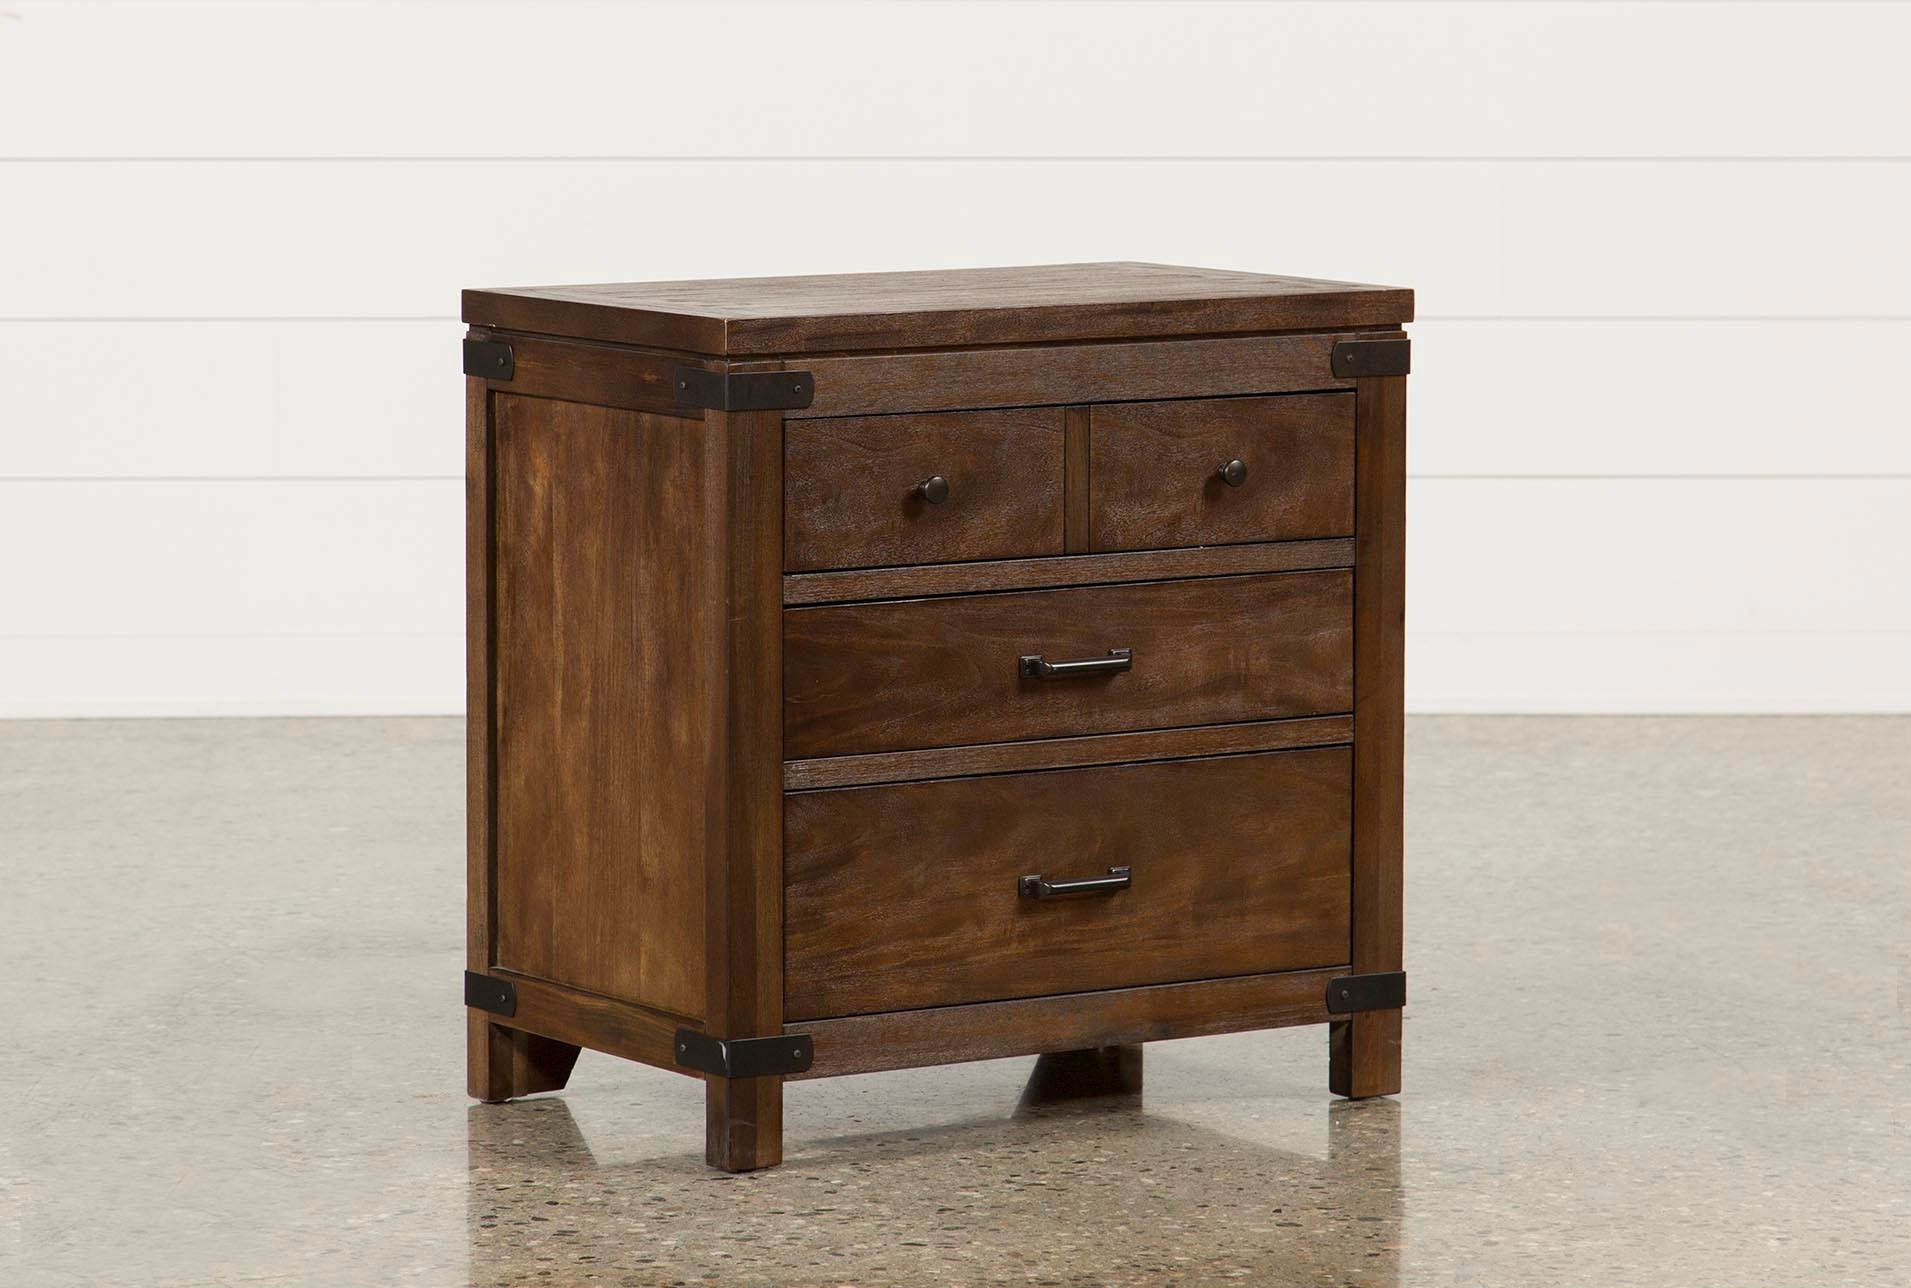 Livingston 3 Drawer Nightstand Qty 1 Has Been Successfully Added To Your Cart